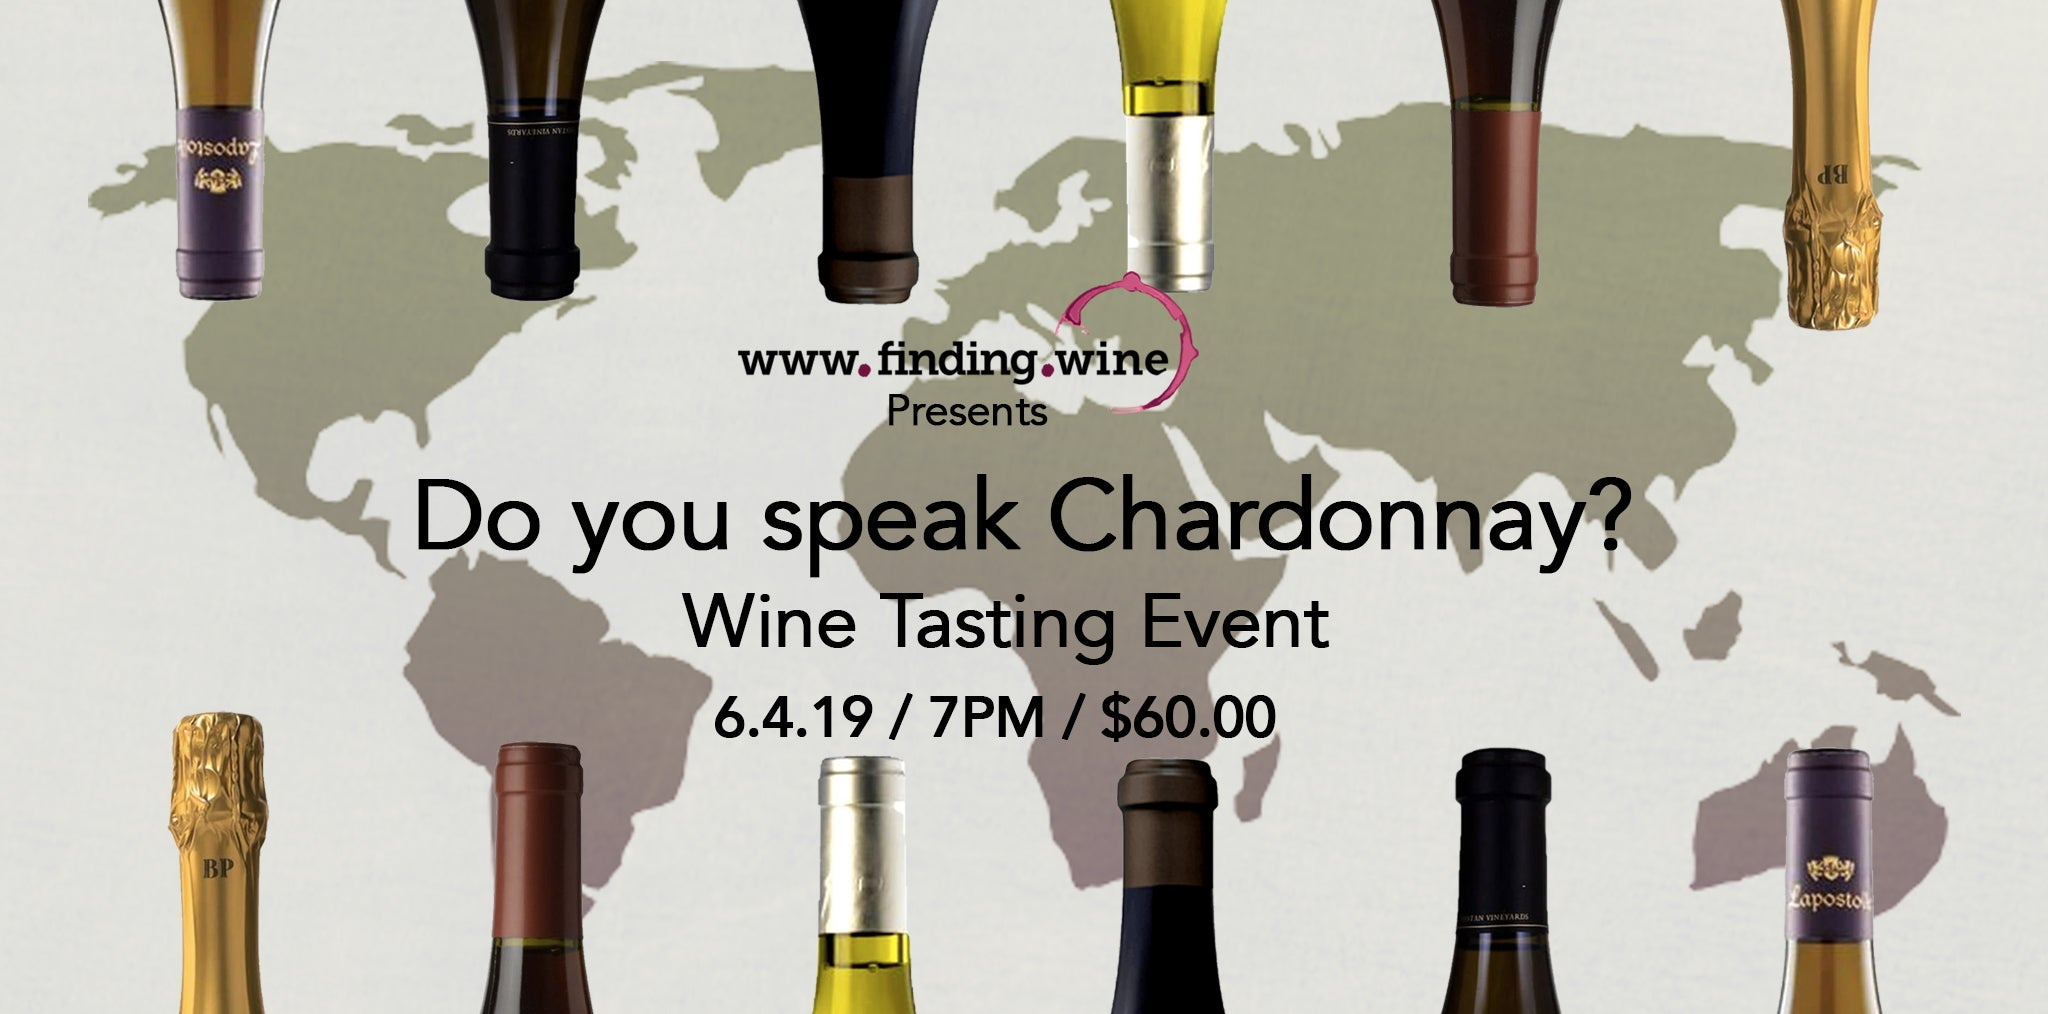 Do you speak Chardonnay?